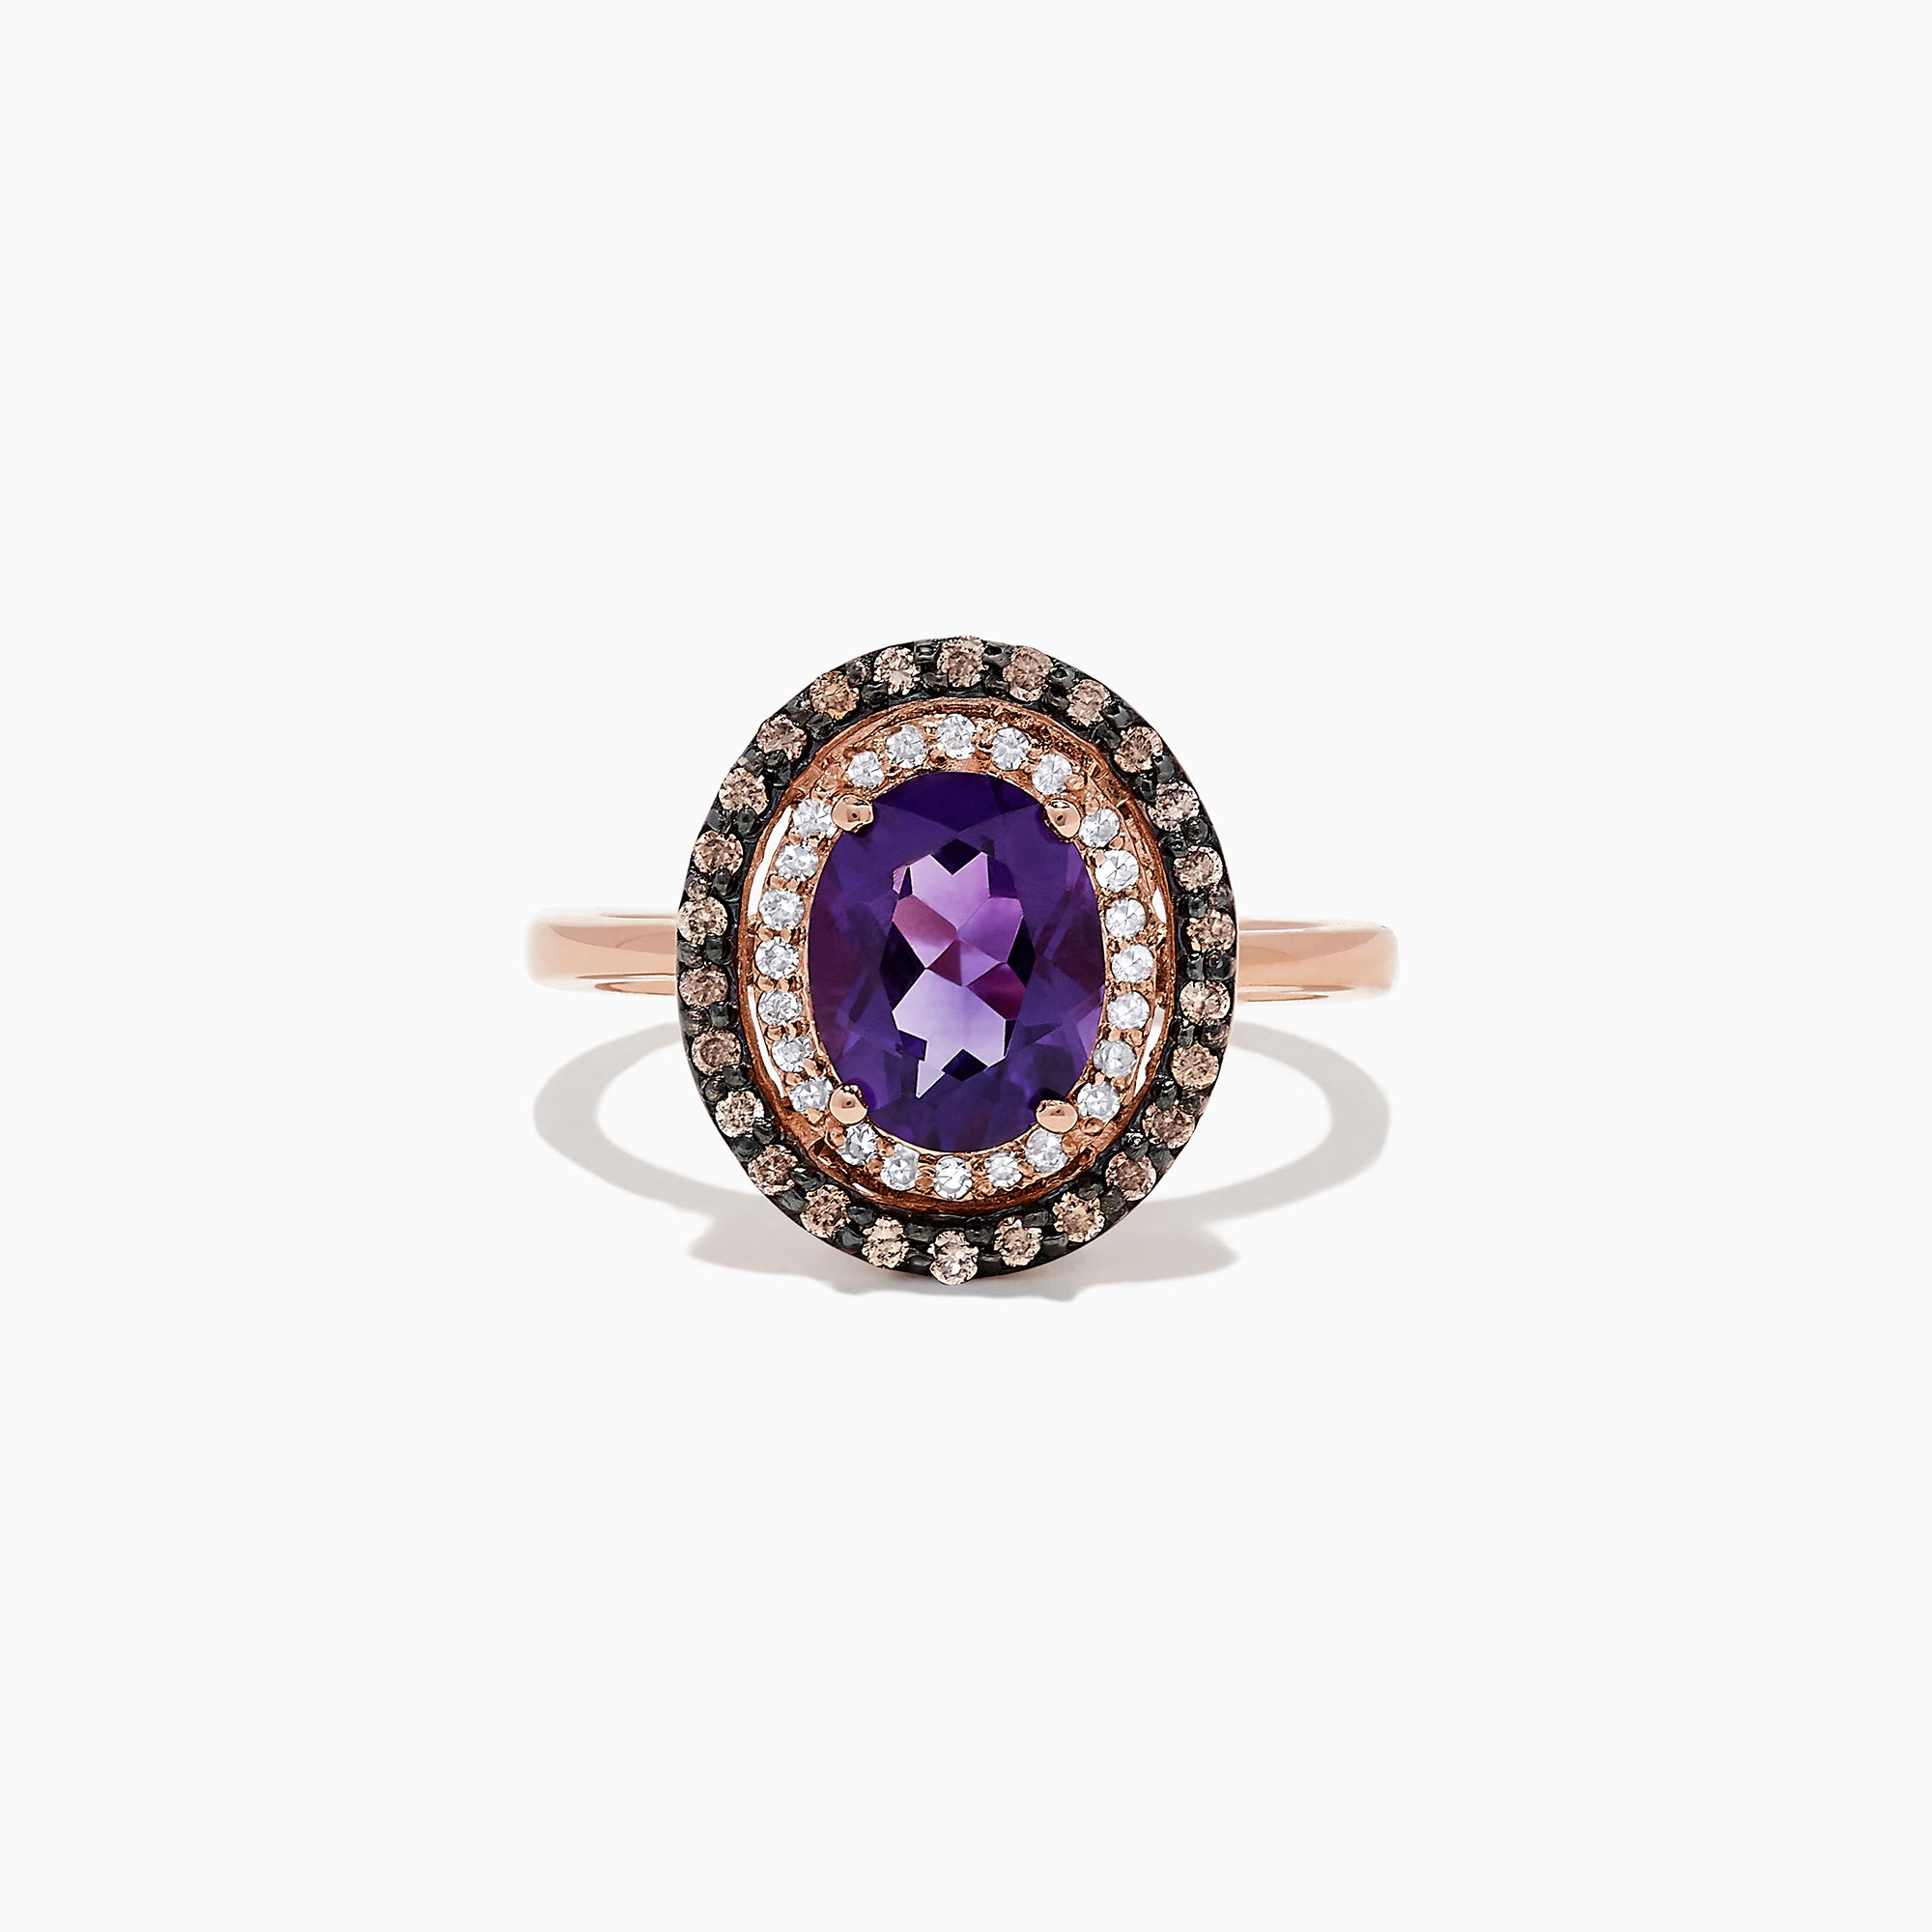 Effy 14K Rose Gold Amethyst and Diamond Ring, 1.82 TCW